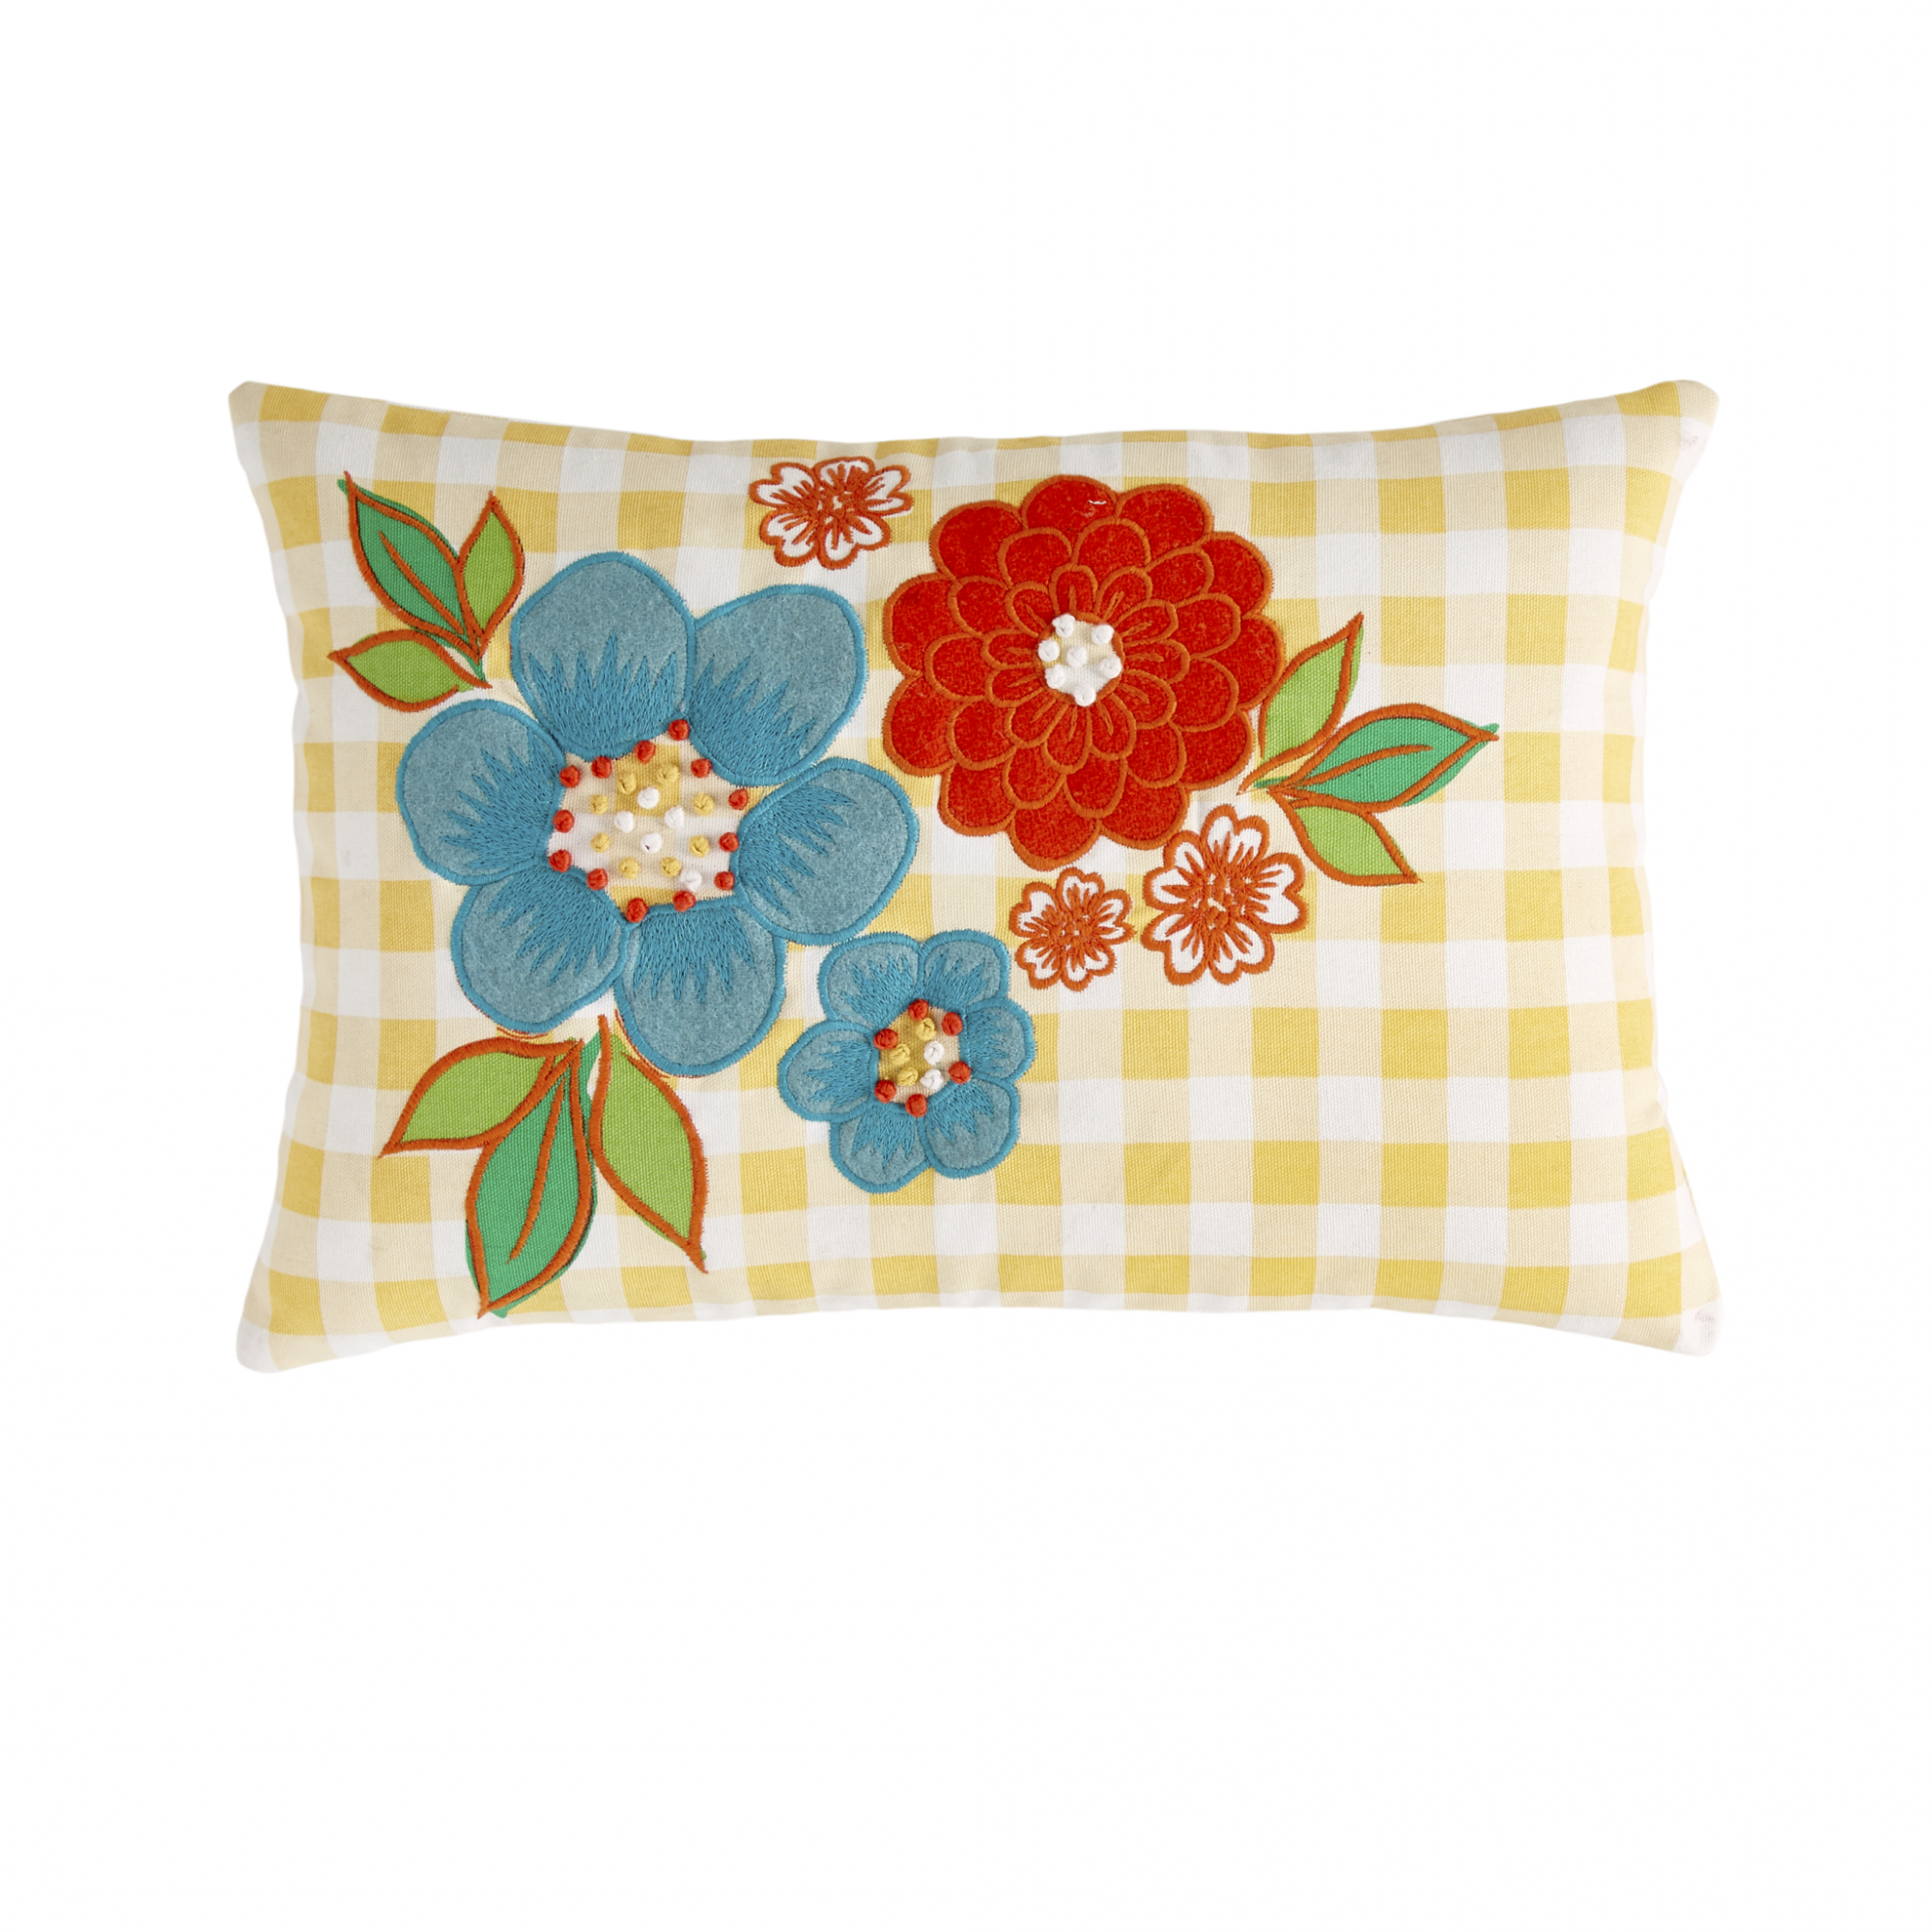 Gingham Floral Decorative Pillow